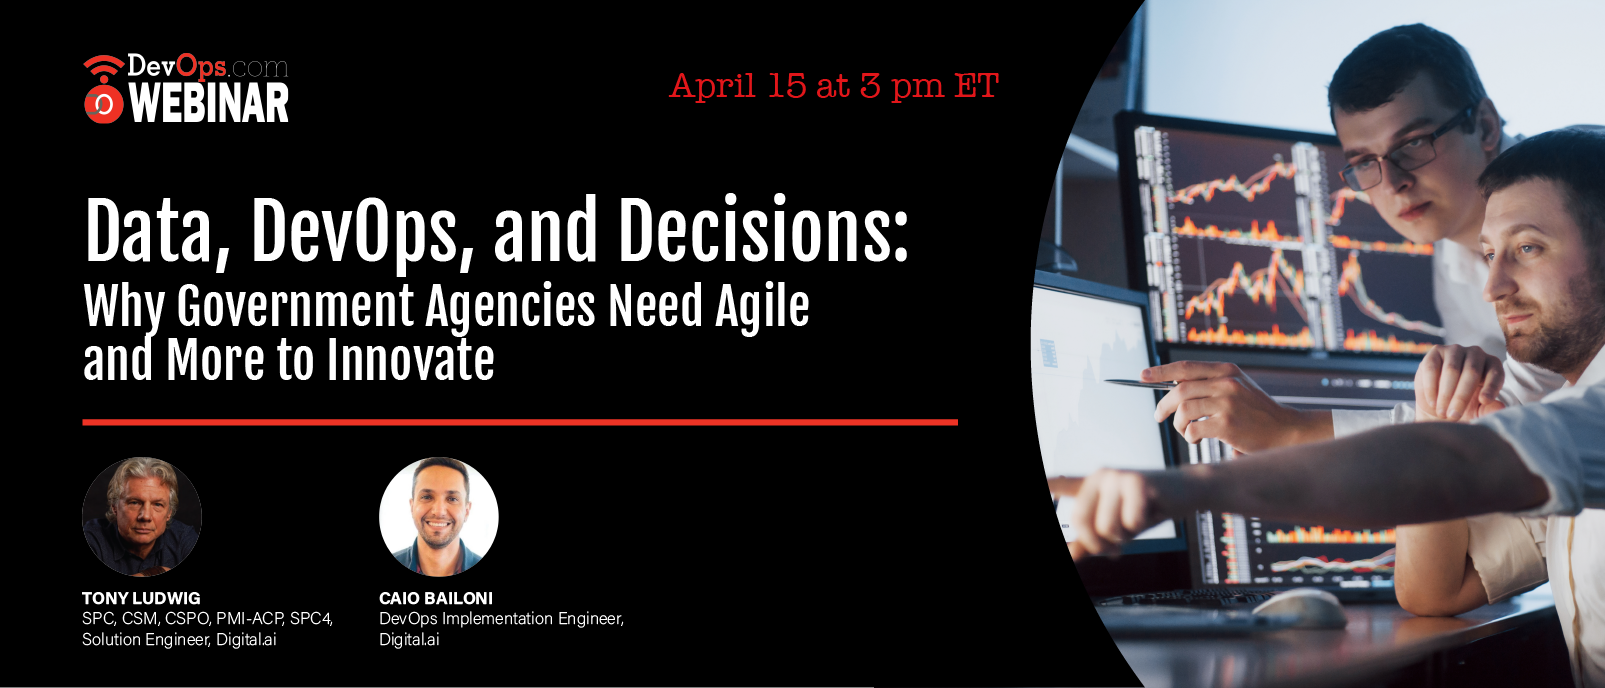 Data, DevOps, and Decisions: Why Government Agencies Need Agile and More to Innovate